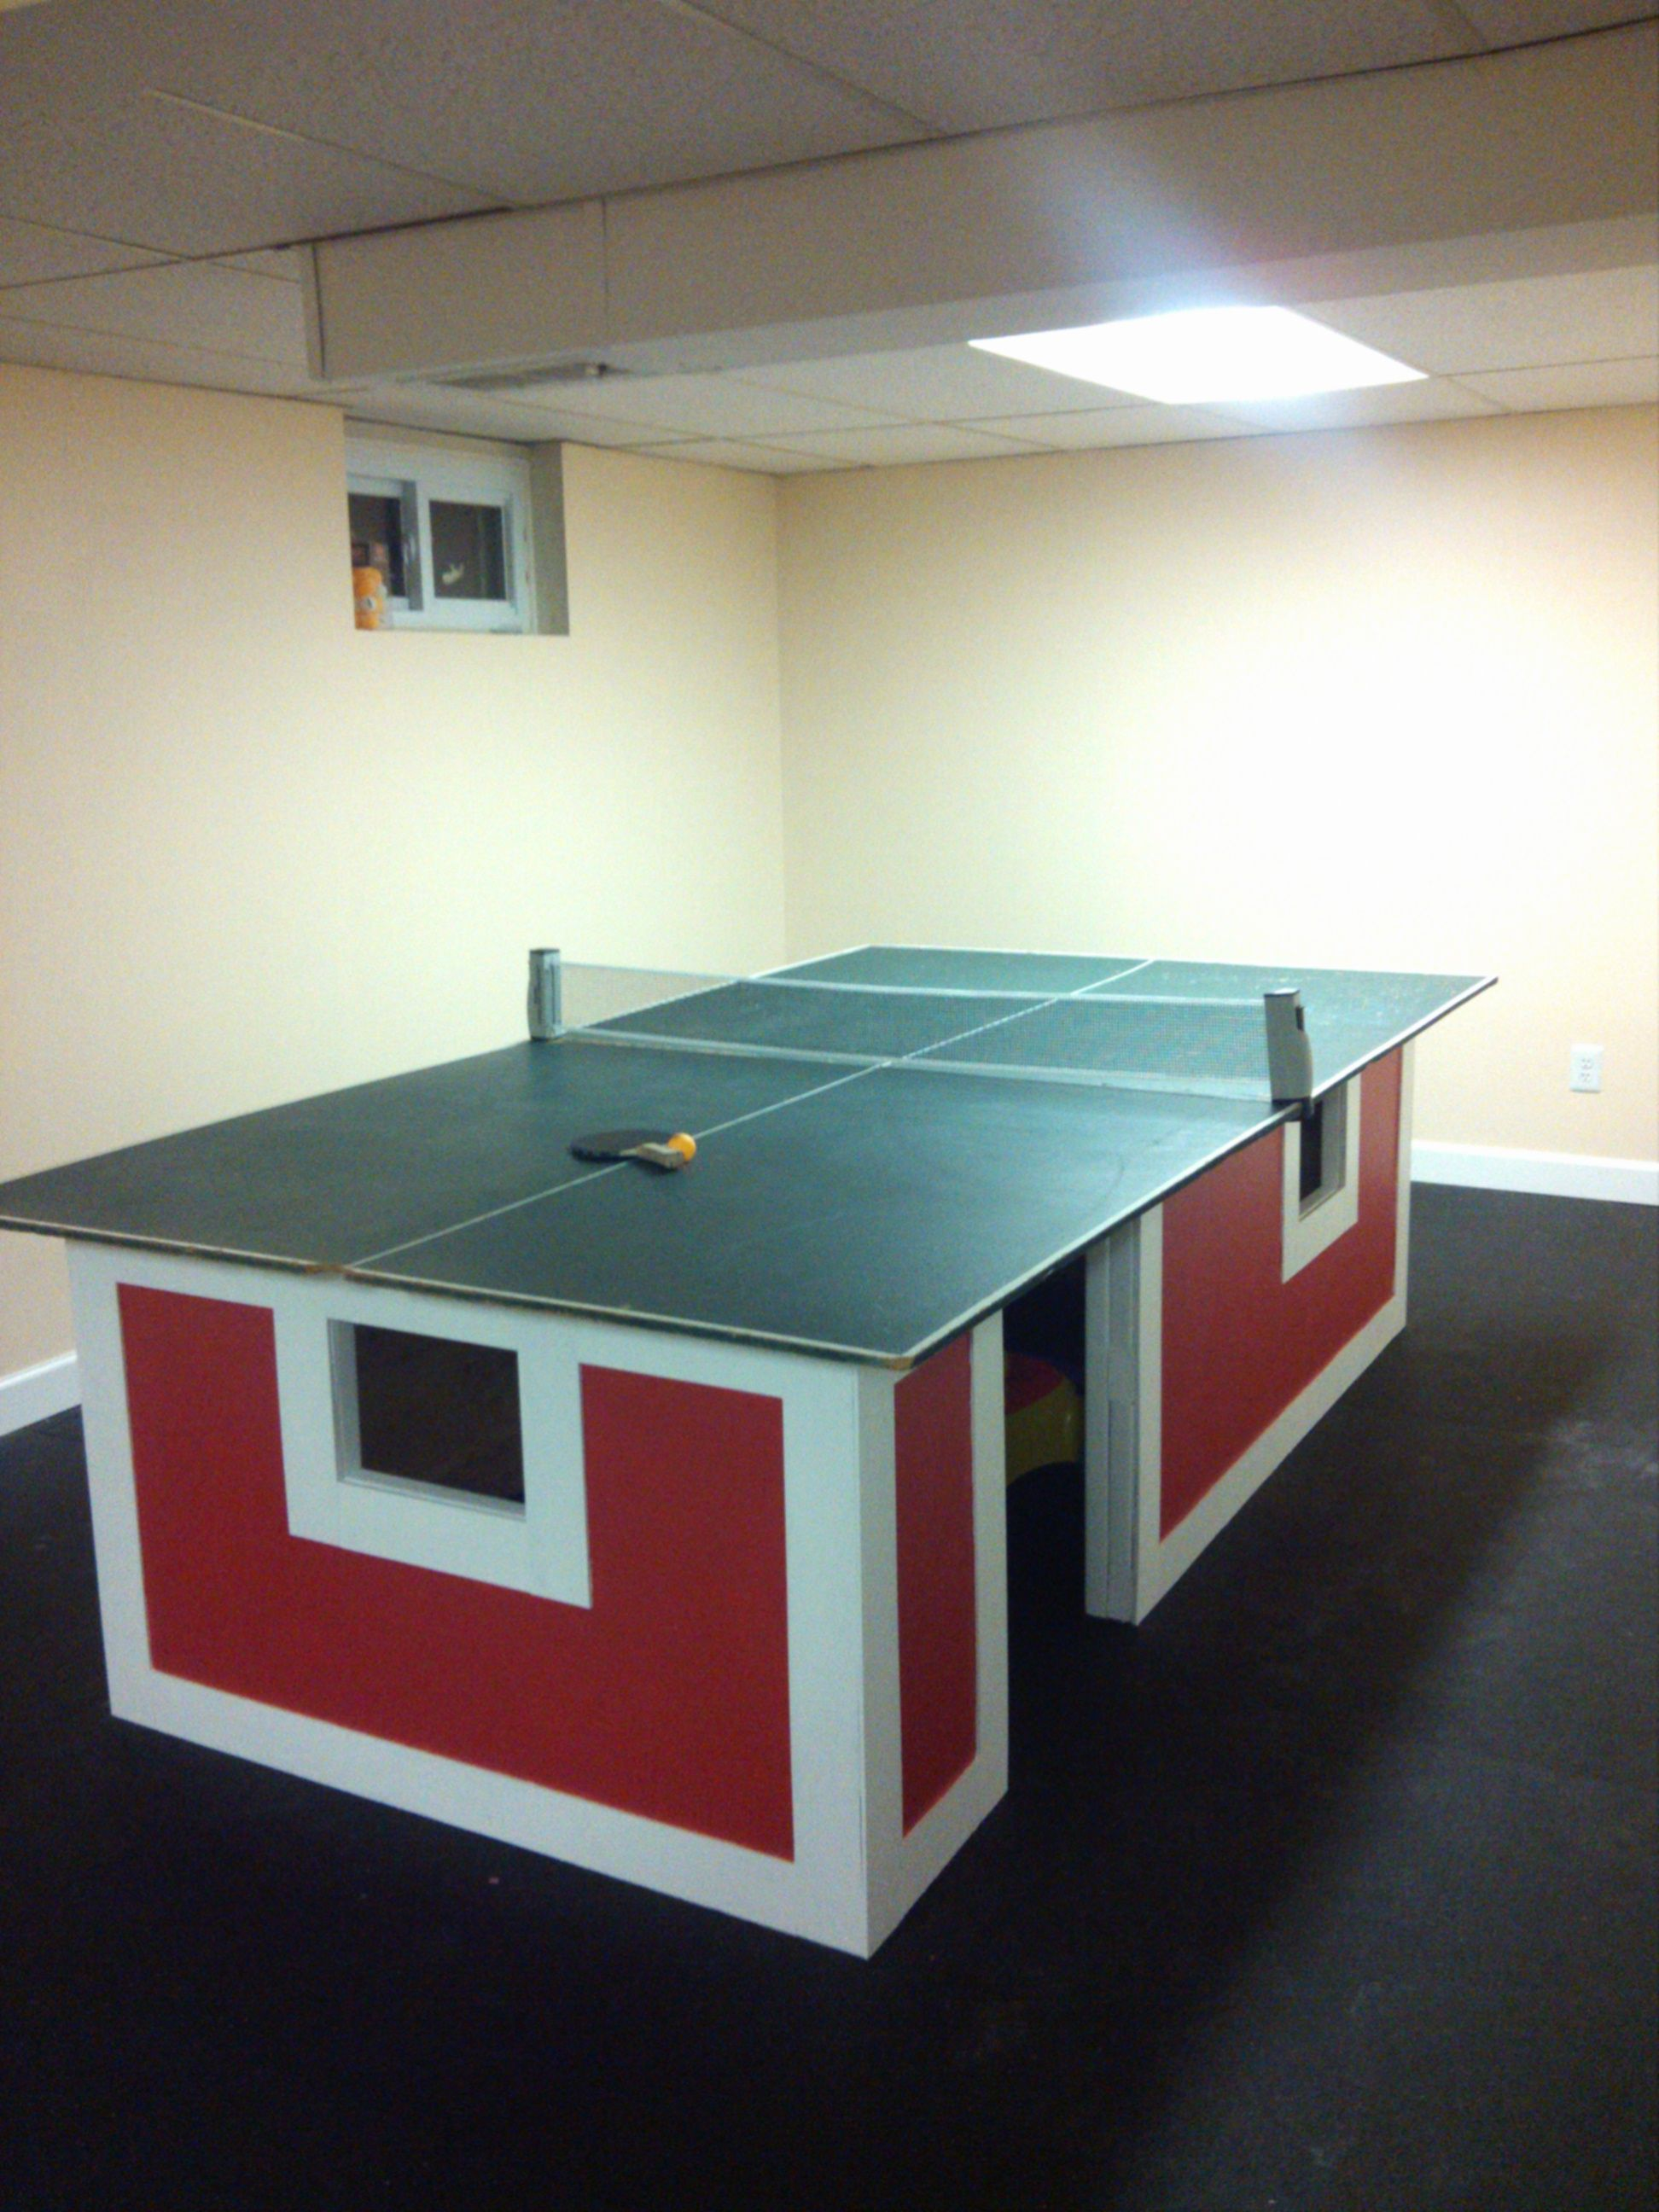 Ping pong table fort Ping pong table, Ping pong, Game